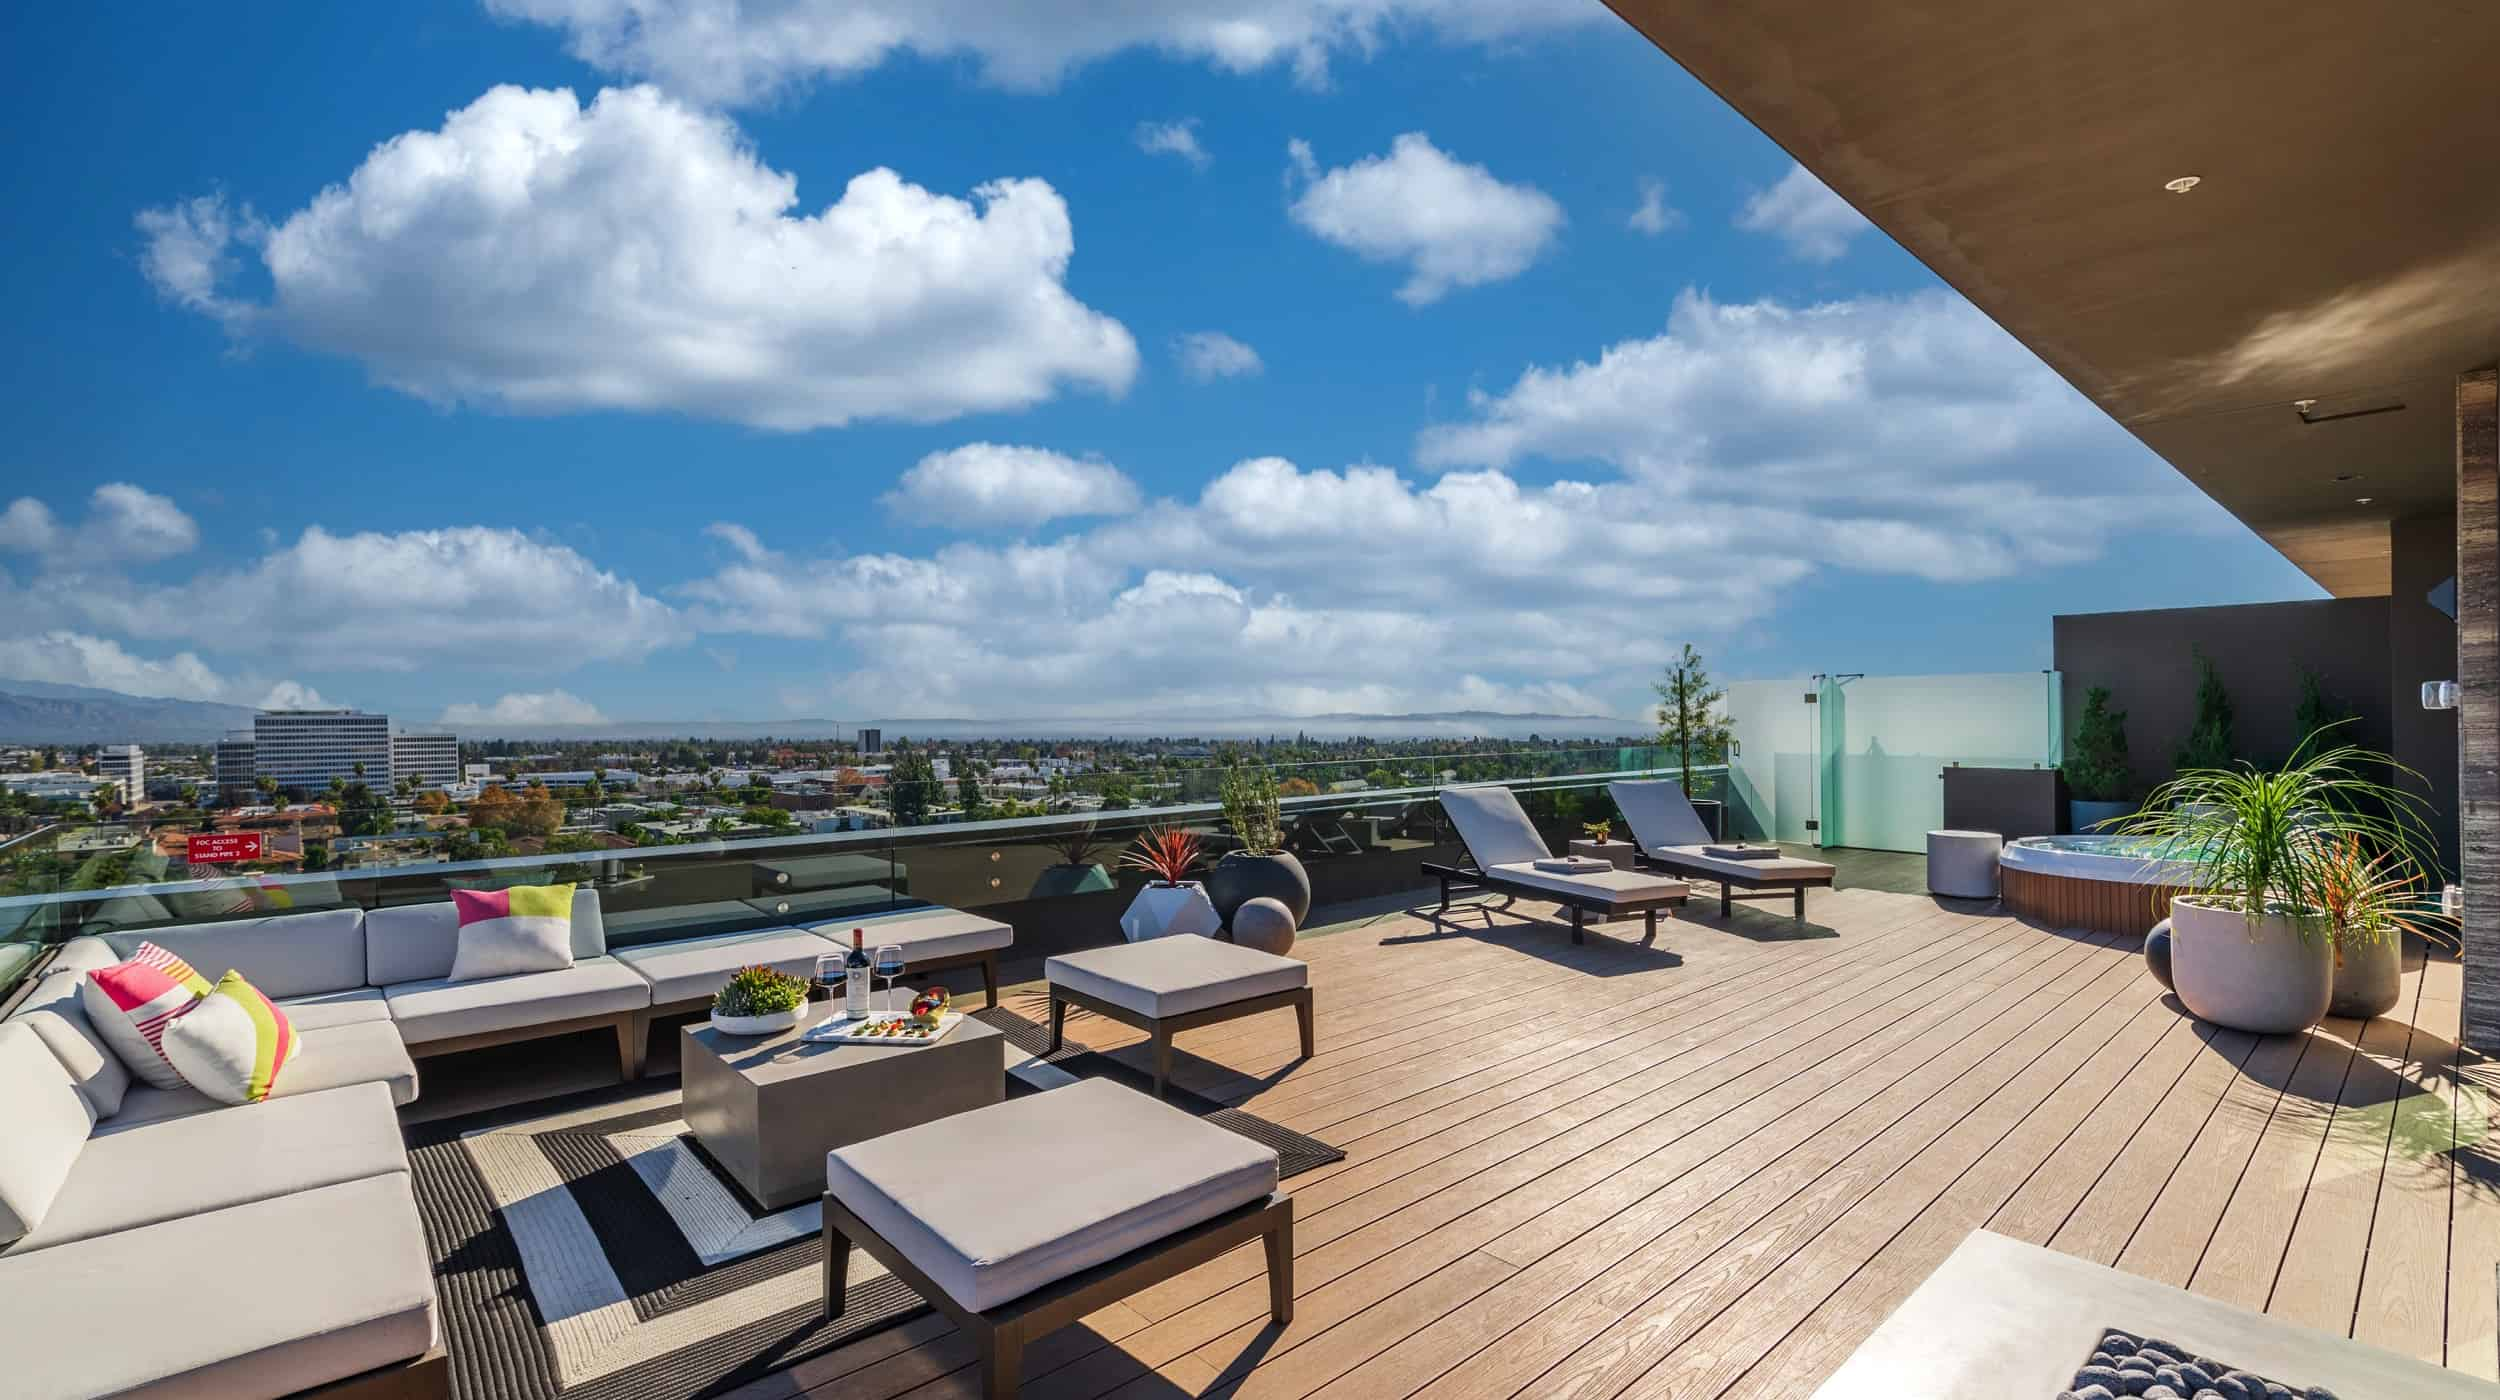 388_Penthouse_Deck_Lounge_View